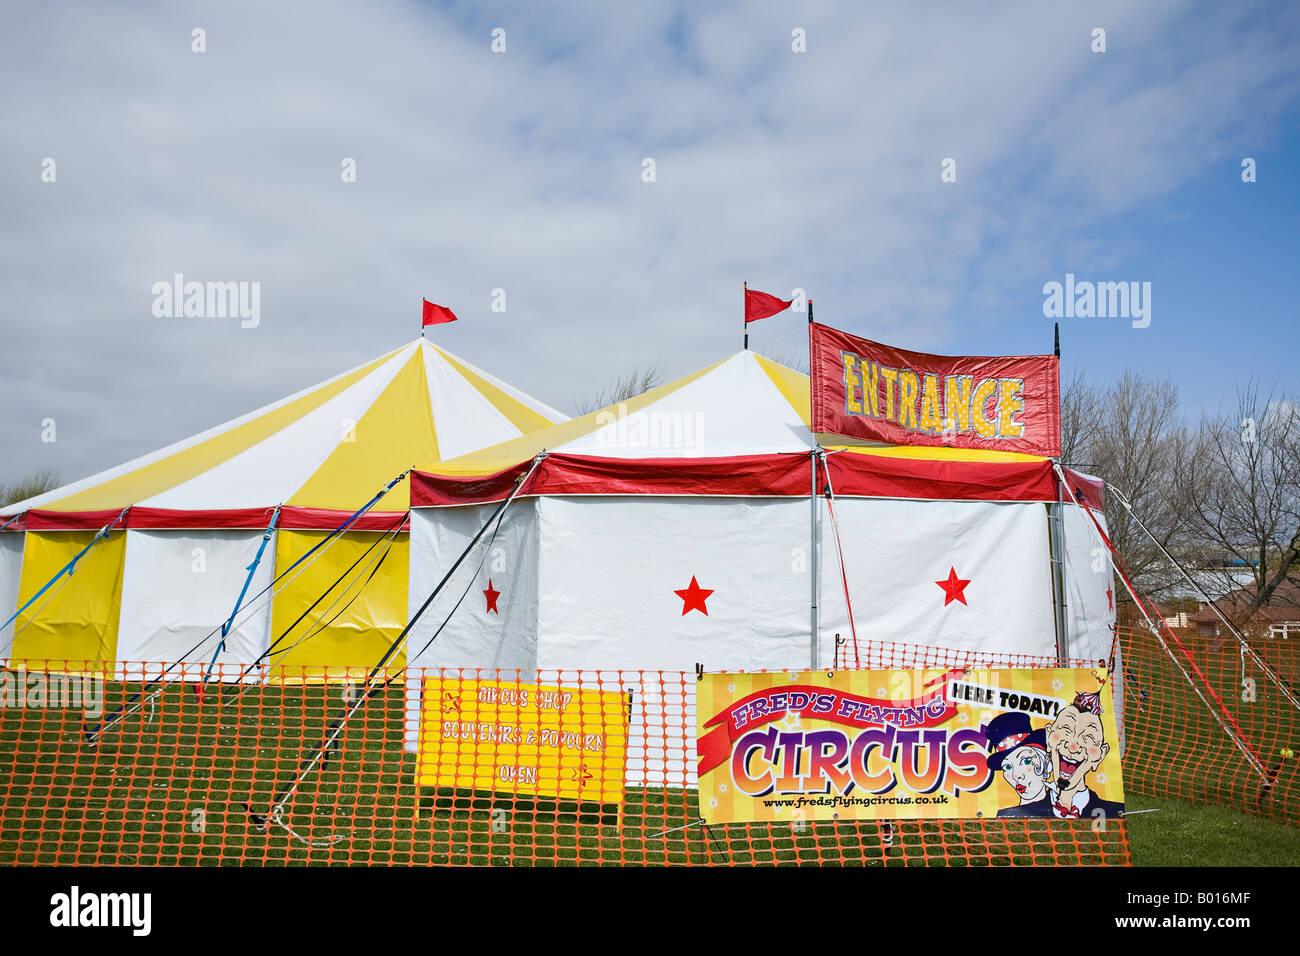 Circus tent. Sussex, England - Stock Image